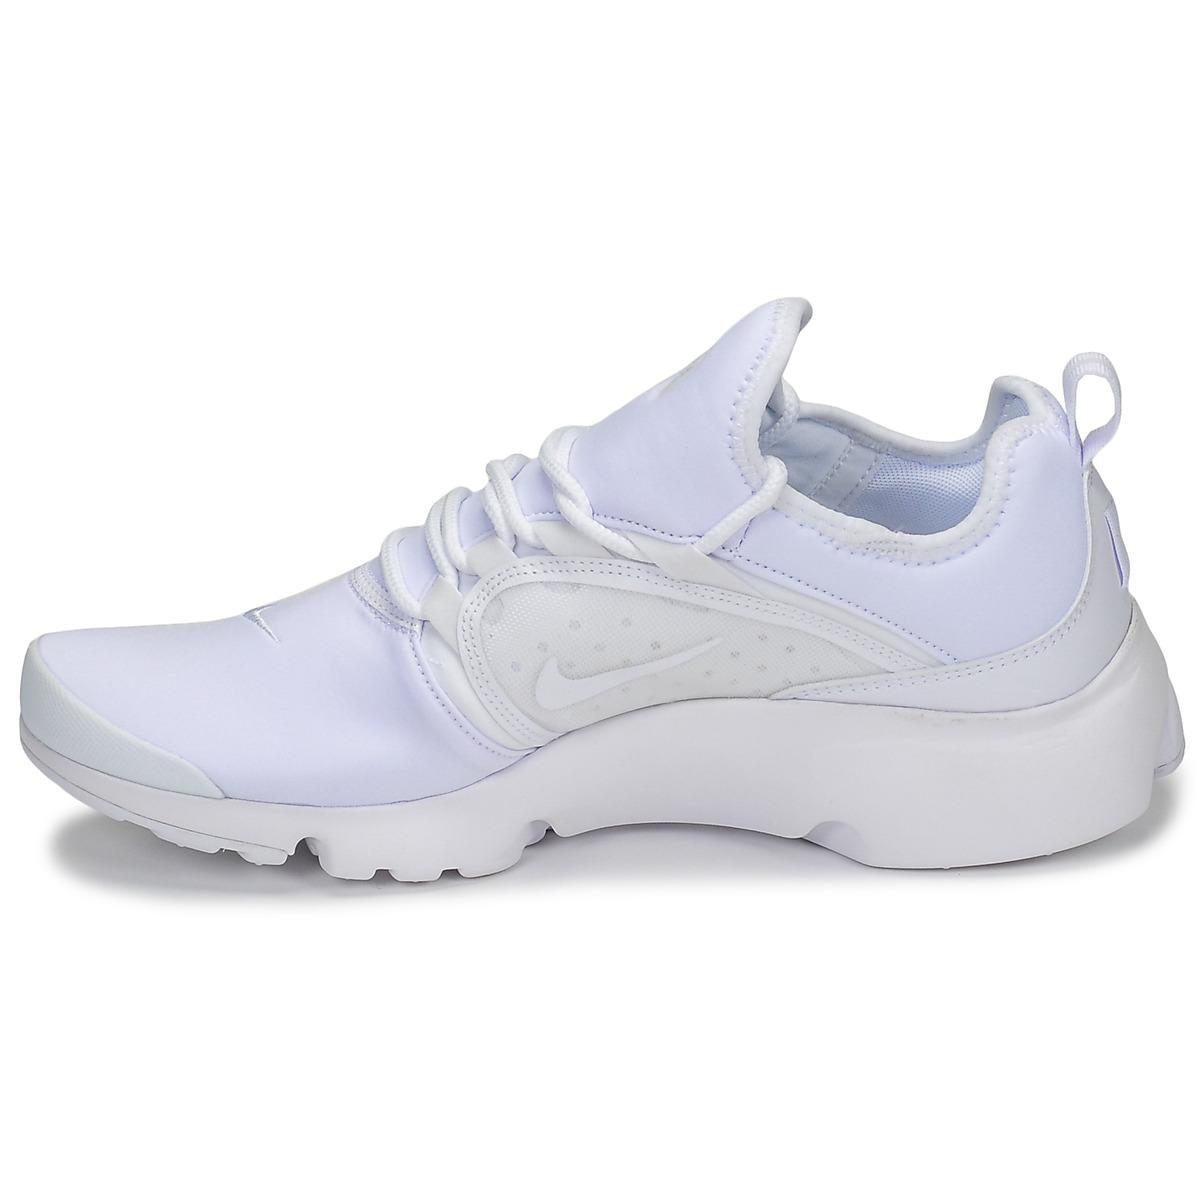 special section presenting sale uk Presto Fly World Shoes (trainers)